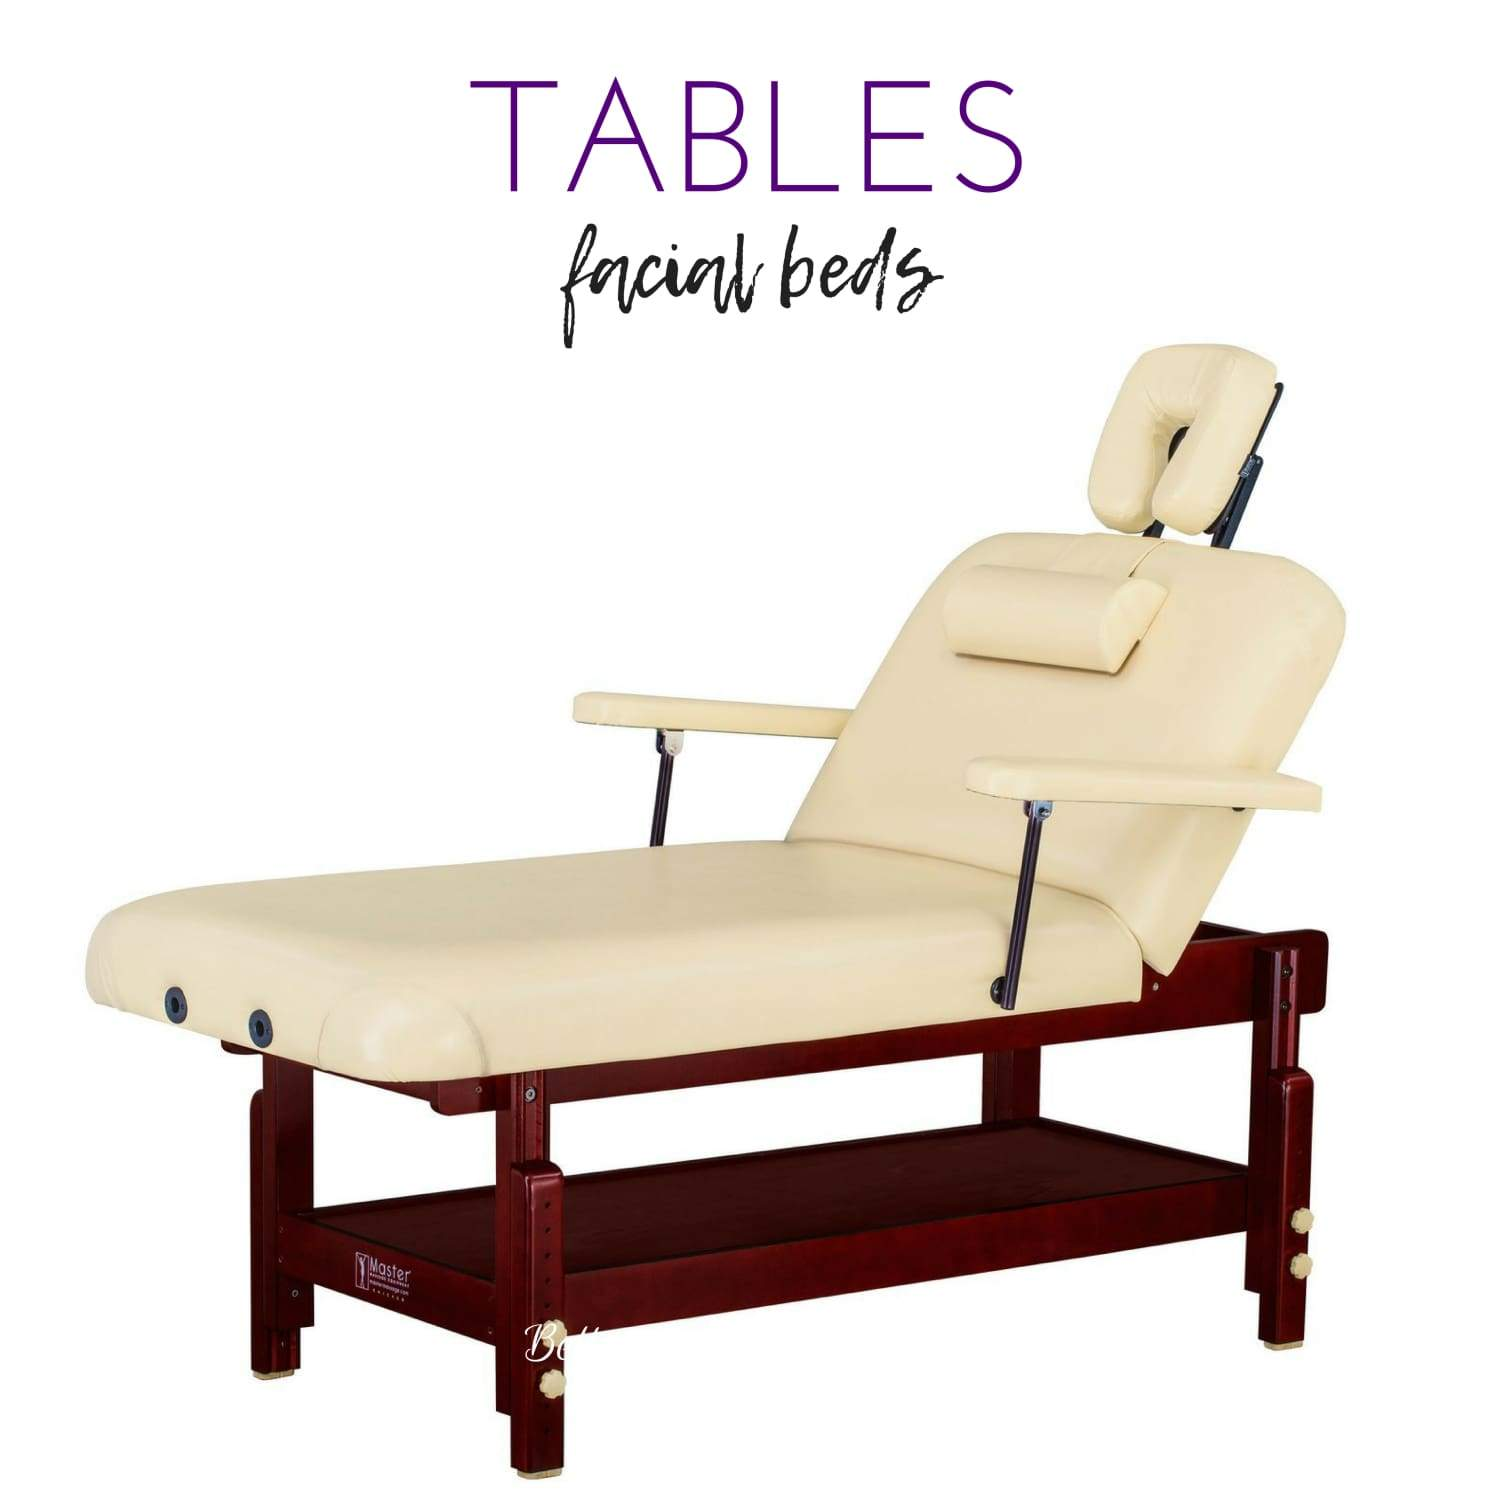 Professional Facial Beds and Tables I EstySpot